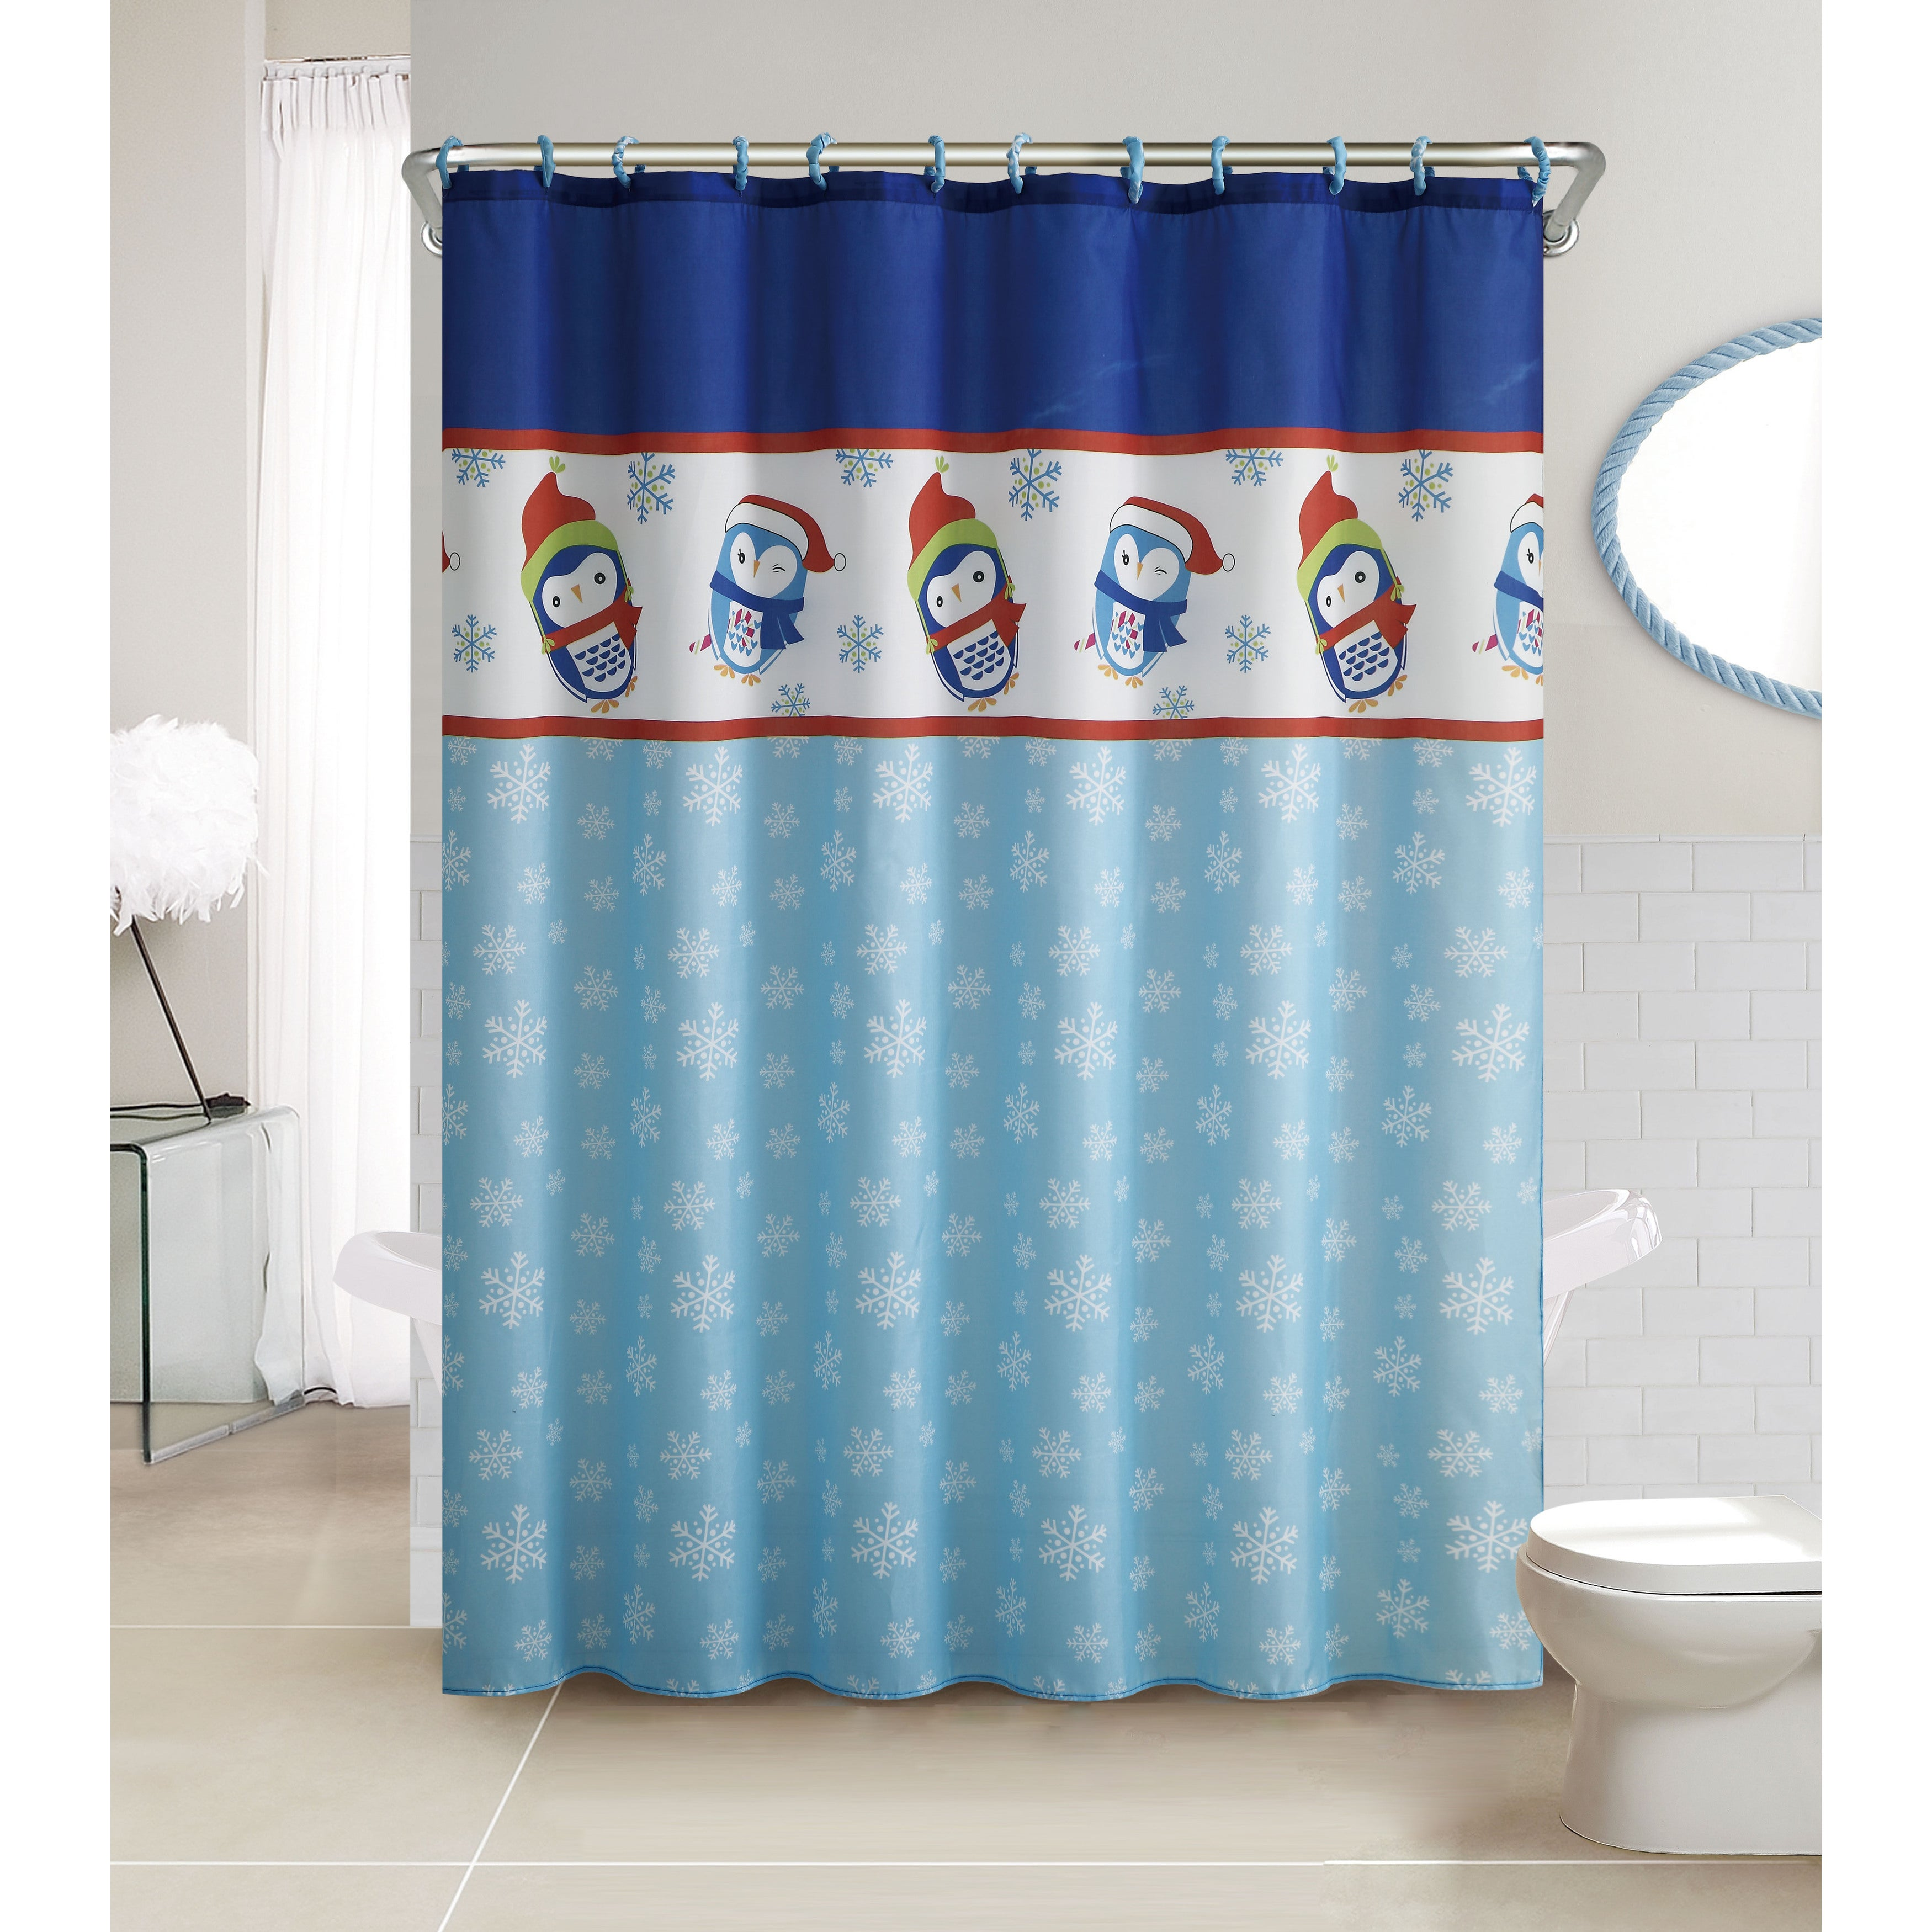 Vcny Penguin 13-Piece Christmas Themed Holiday Shower Cur...